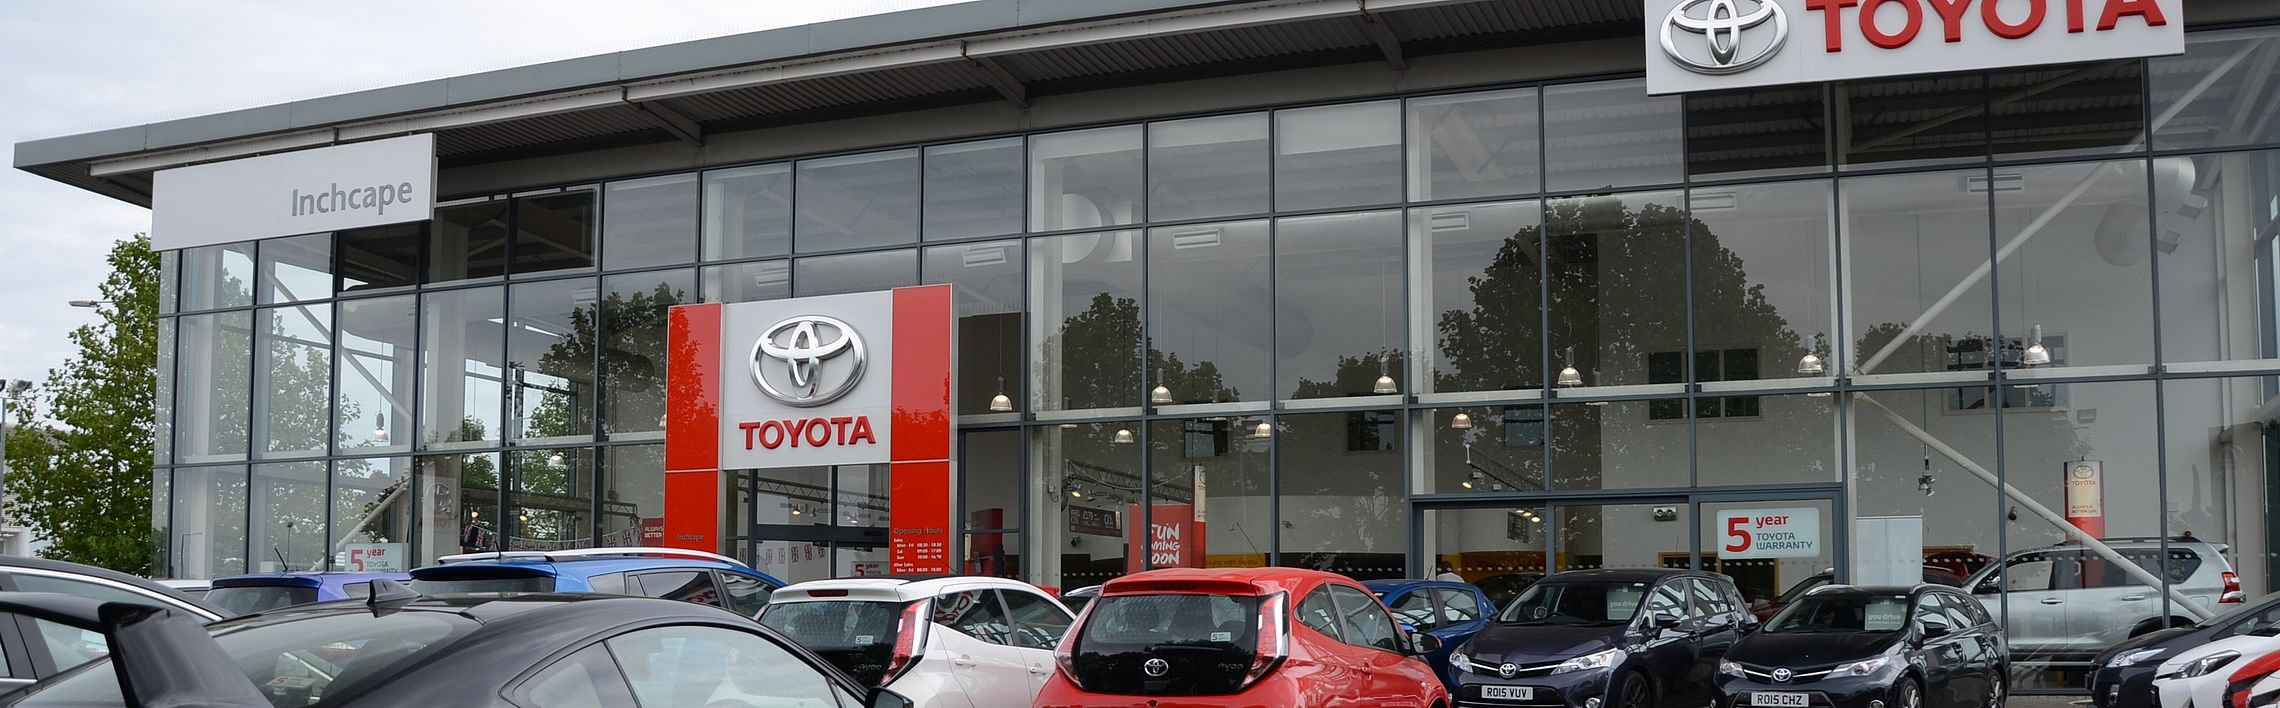 Inchcape Toyota Guildford